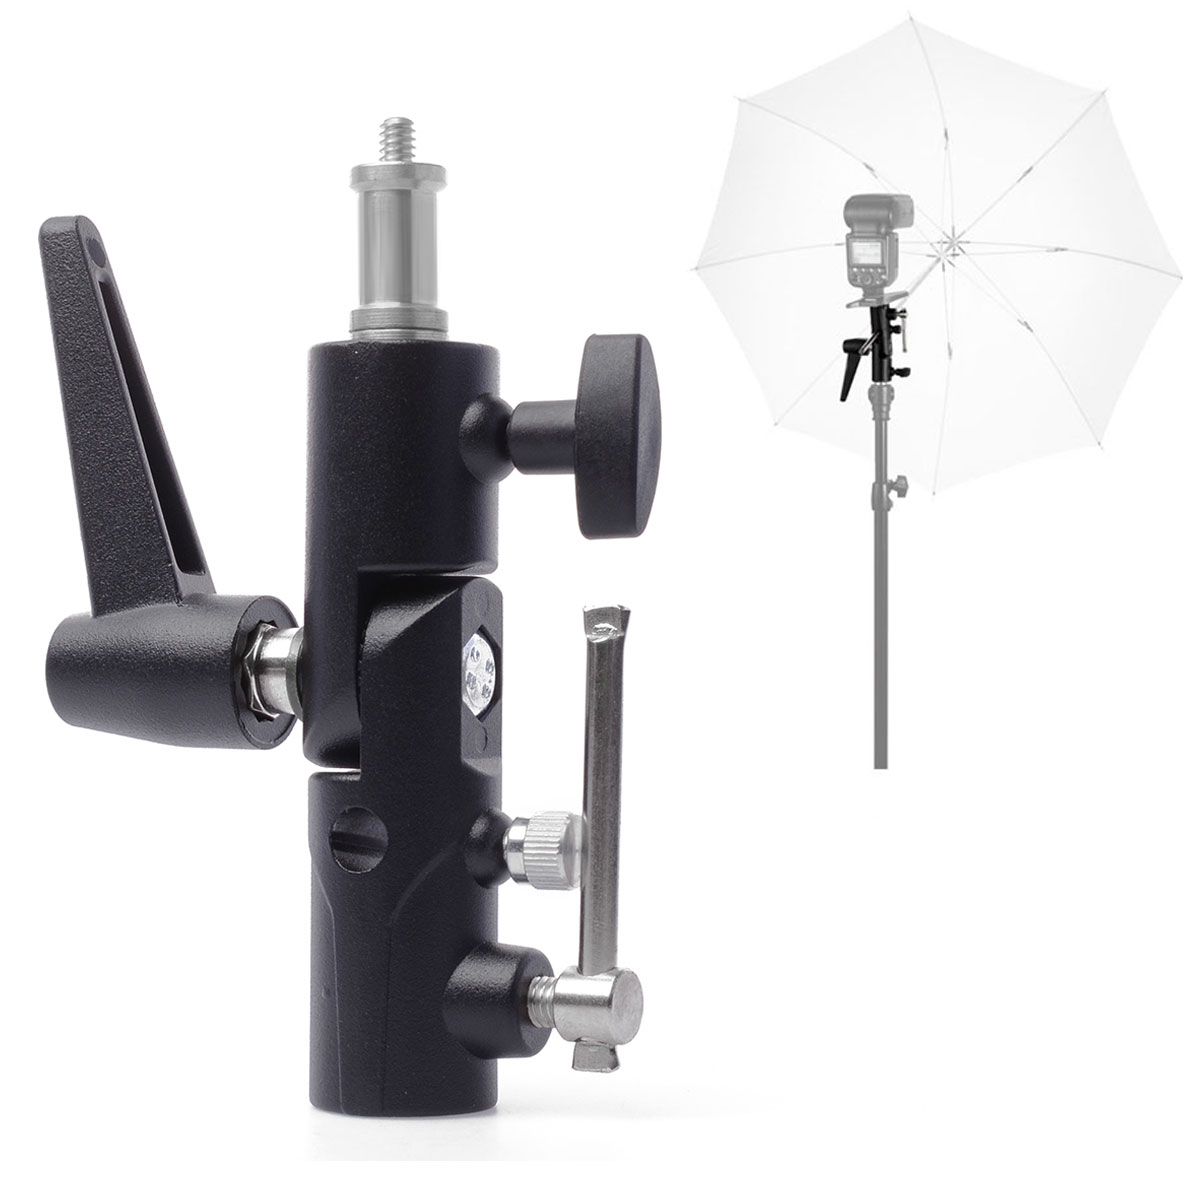 Flash Umbrella Holder Light Stand Bracket for Speedlite Strobe Photography